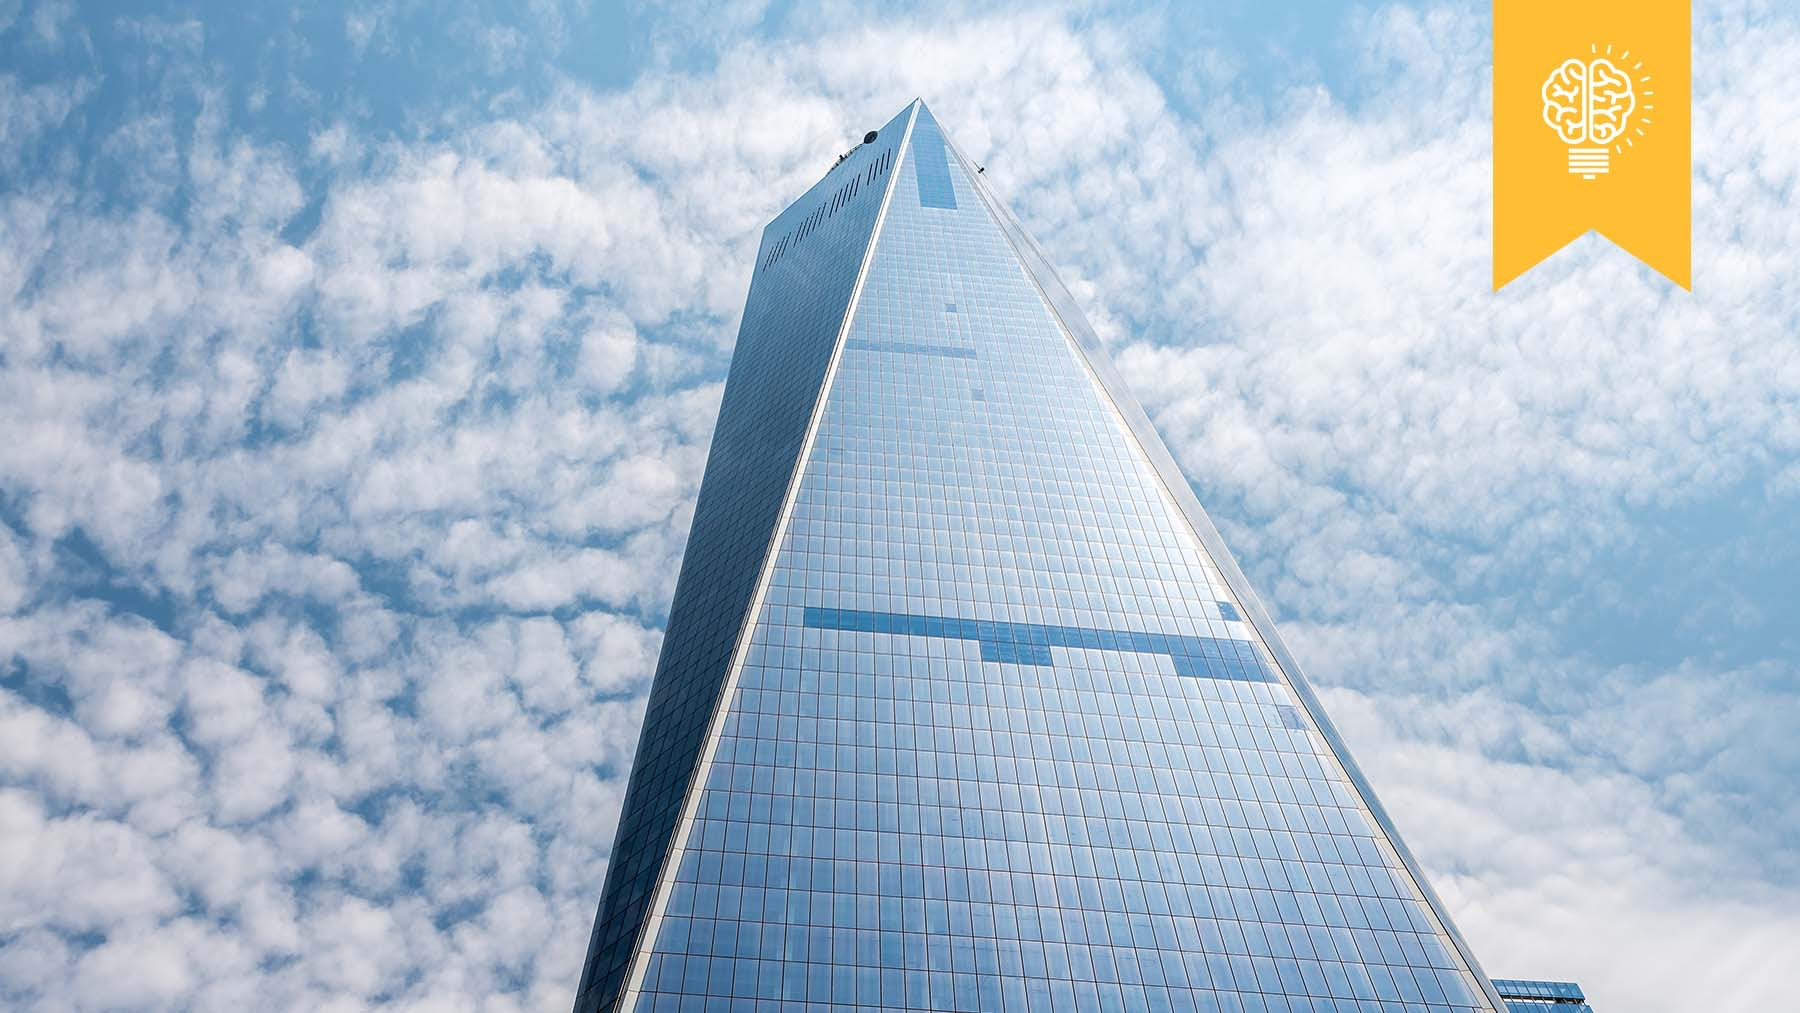 Condé Nast's headquarters at the World Trade Center in New York   Source: Shutterstock